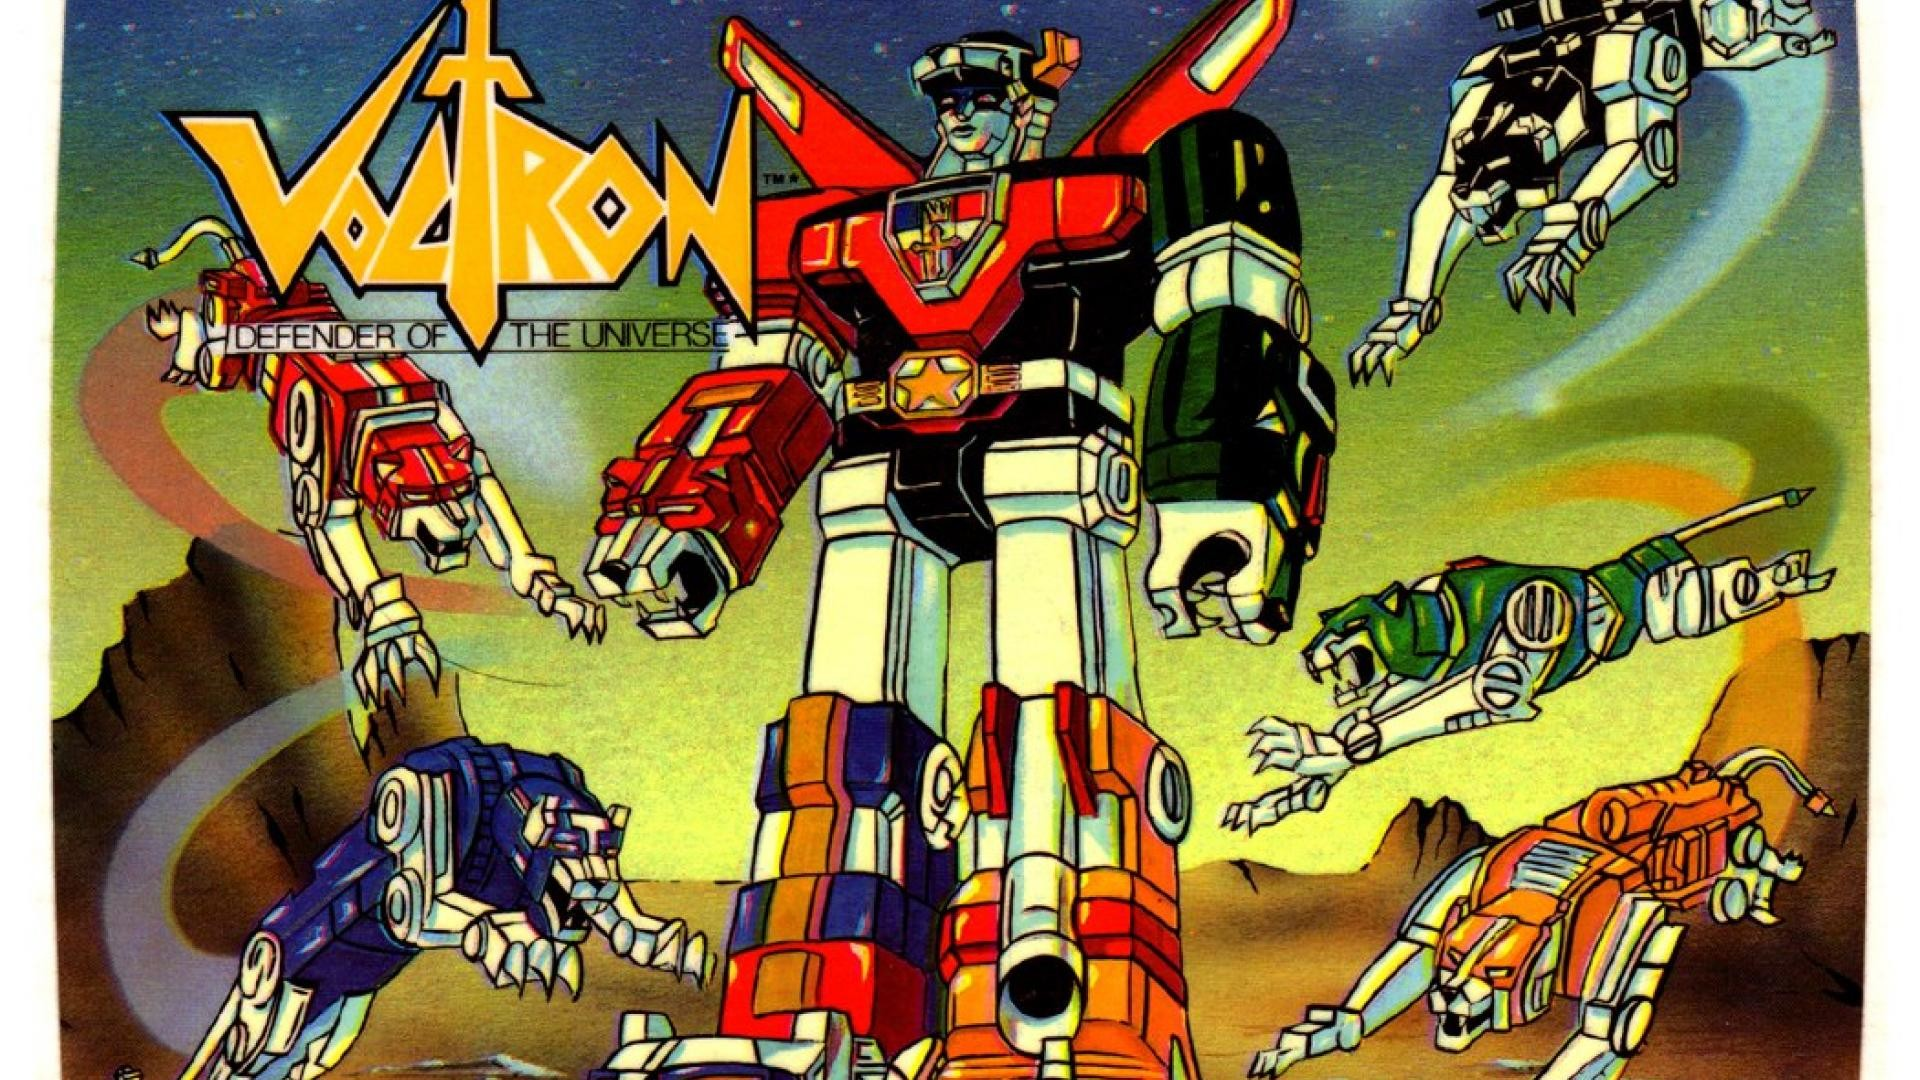 Voltron at 3B Cancelled by Red Sox; Plouffe Signs with the A's   The 300s